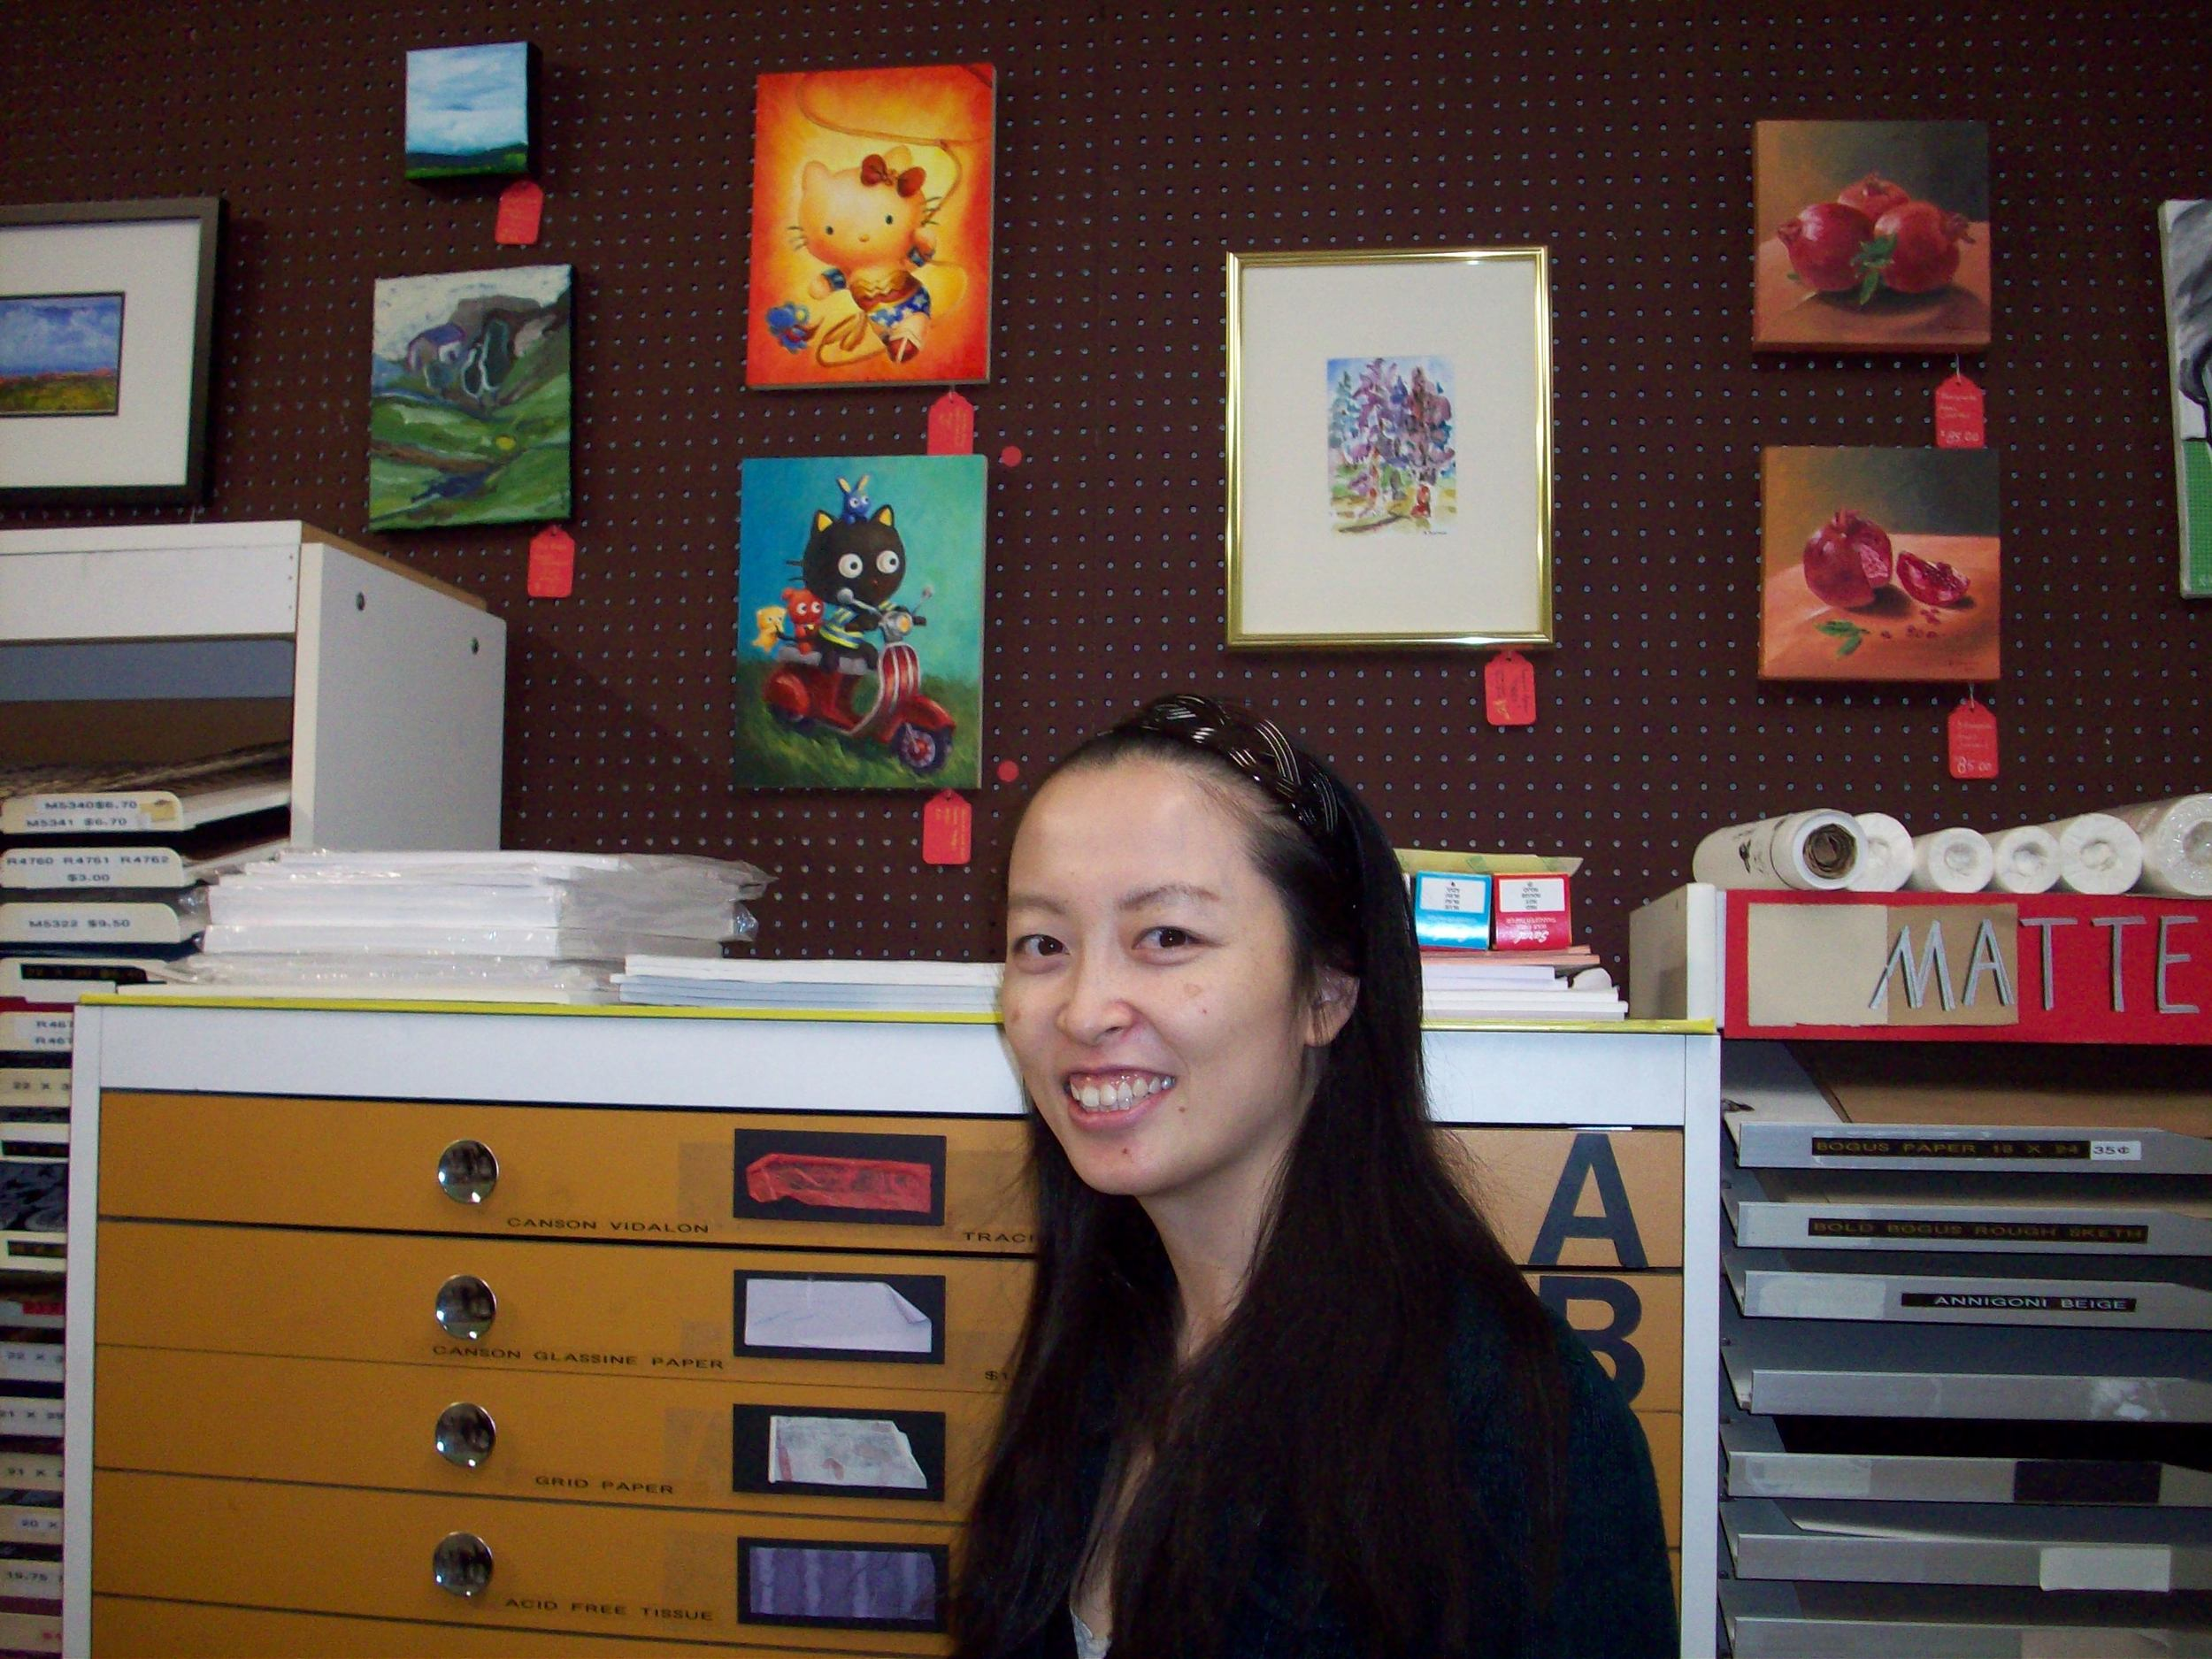 A couple of years ago, I submitted my Hello Kitty Wonderwoman and CHococoat painting at the Carter Sexton Holiday Show. These pieces SOLD BEFORE THE SHOW BEGAN. =) Music to my ears! Hopefully I will have the same luck this year!